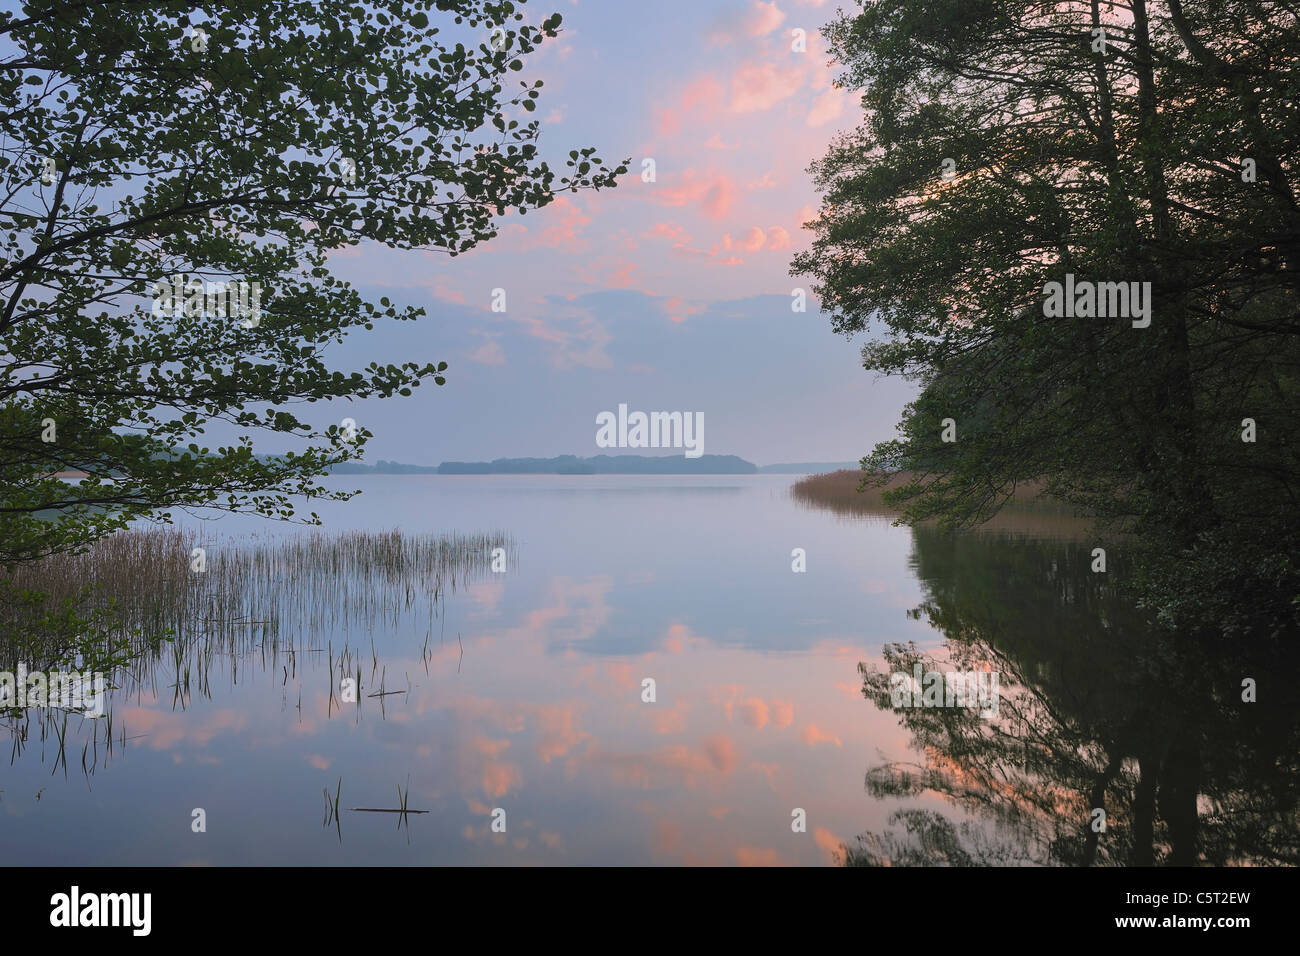 Germany, Mecklenburg-Vorpommern, Mecklenburger Seenplatte, Plau am See, View of suset with trees at lake - Stock Image